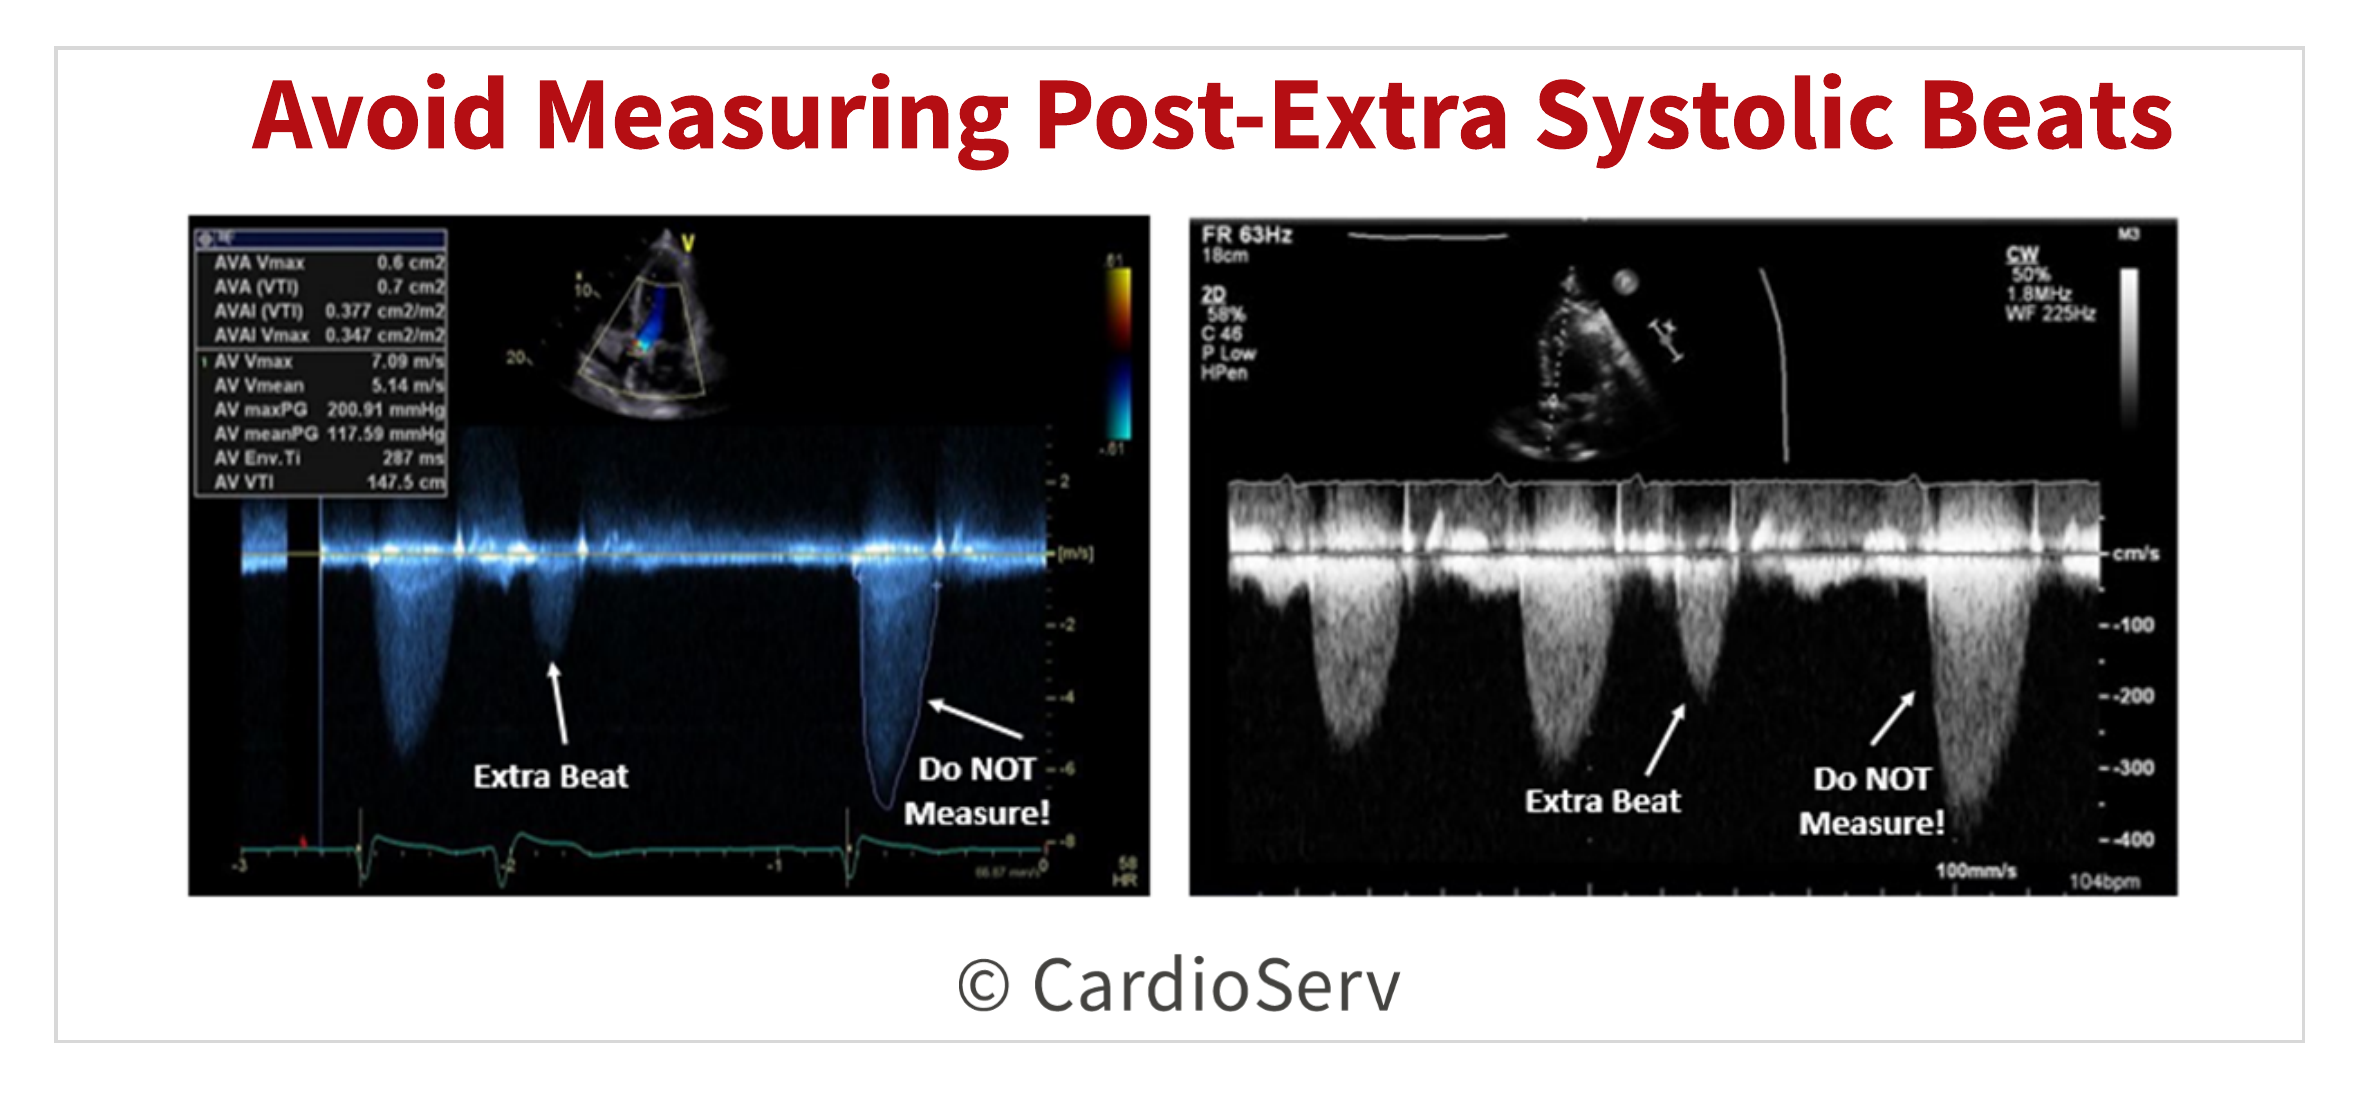 Avoid measuring post-extra systolic beats as peak AV velocity